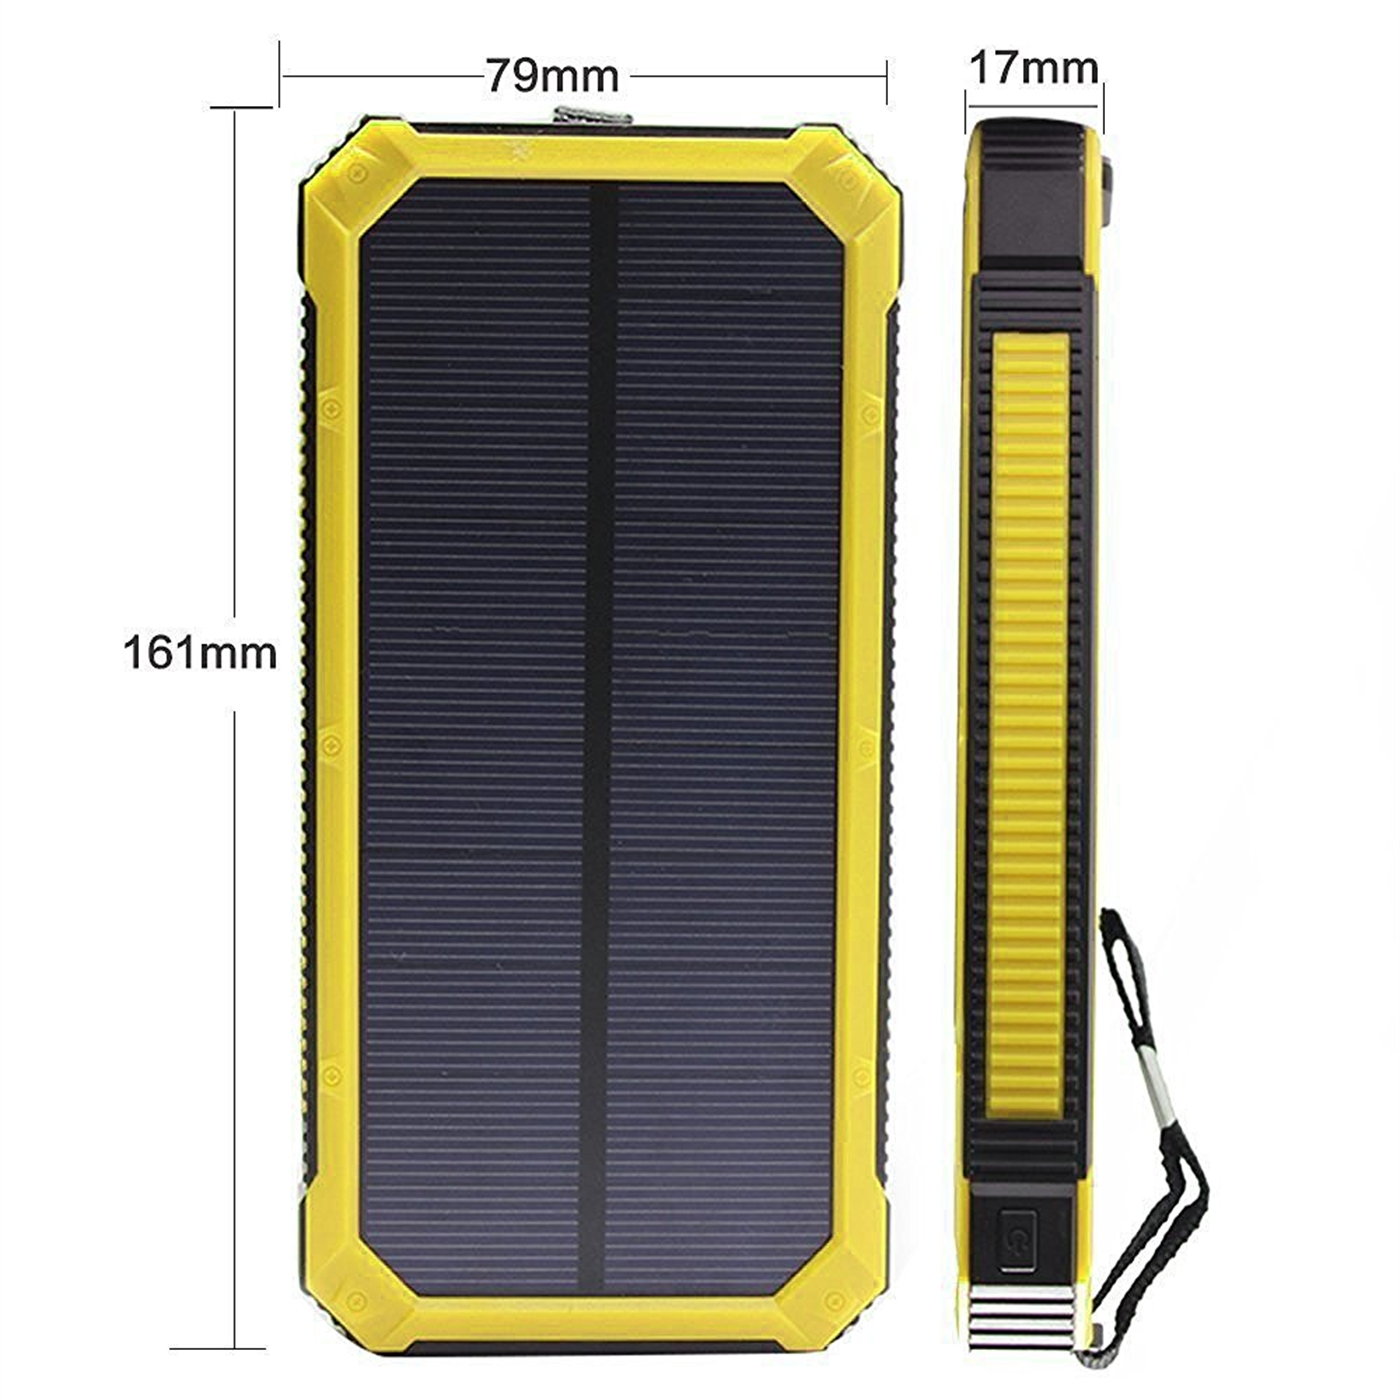 Queenacc Queenacc15000mah Solar Panel Chargeryellow With Led Battery Charging Flashlight Hallomall Portable Phone Charger Backup Power Pack Dual Usb Port External